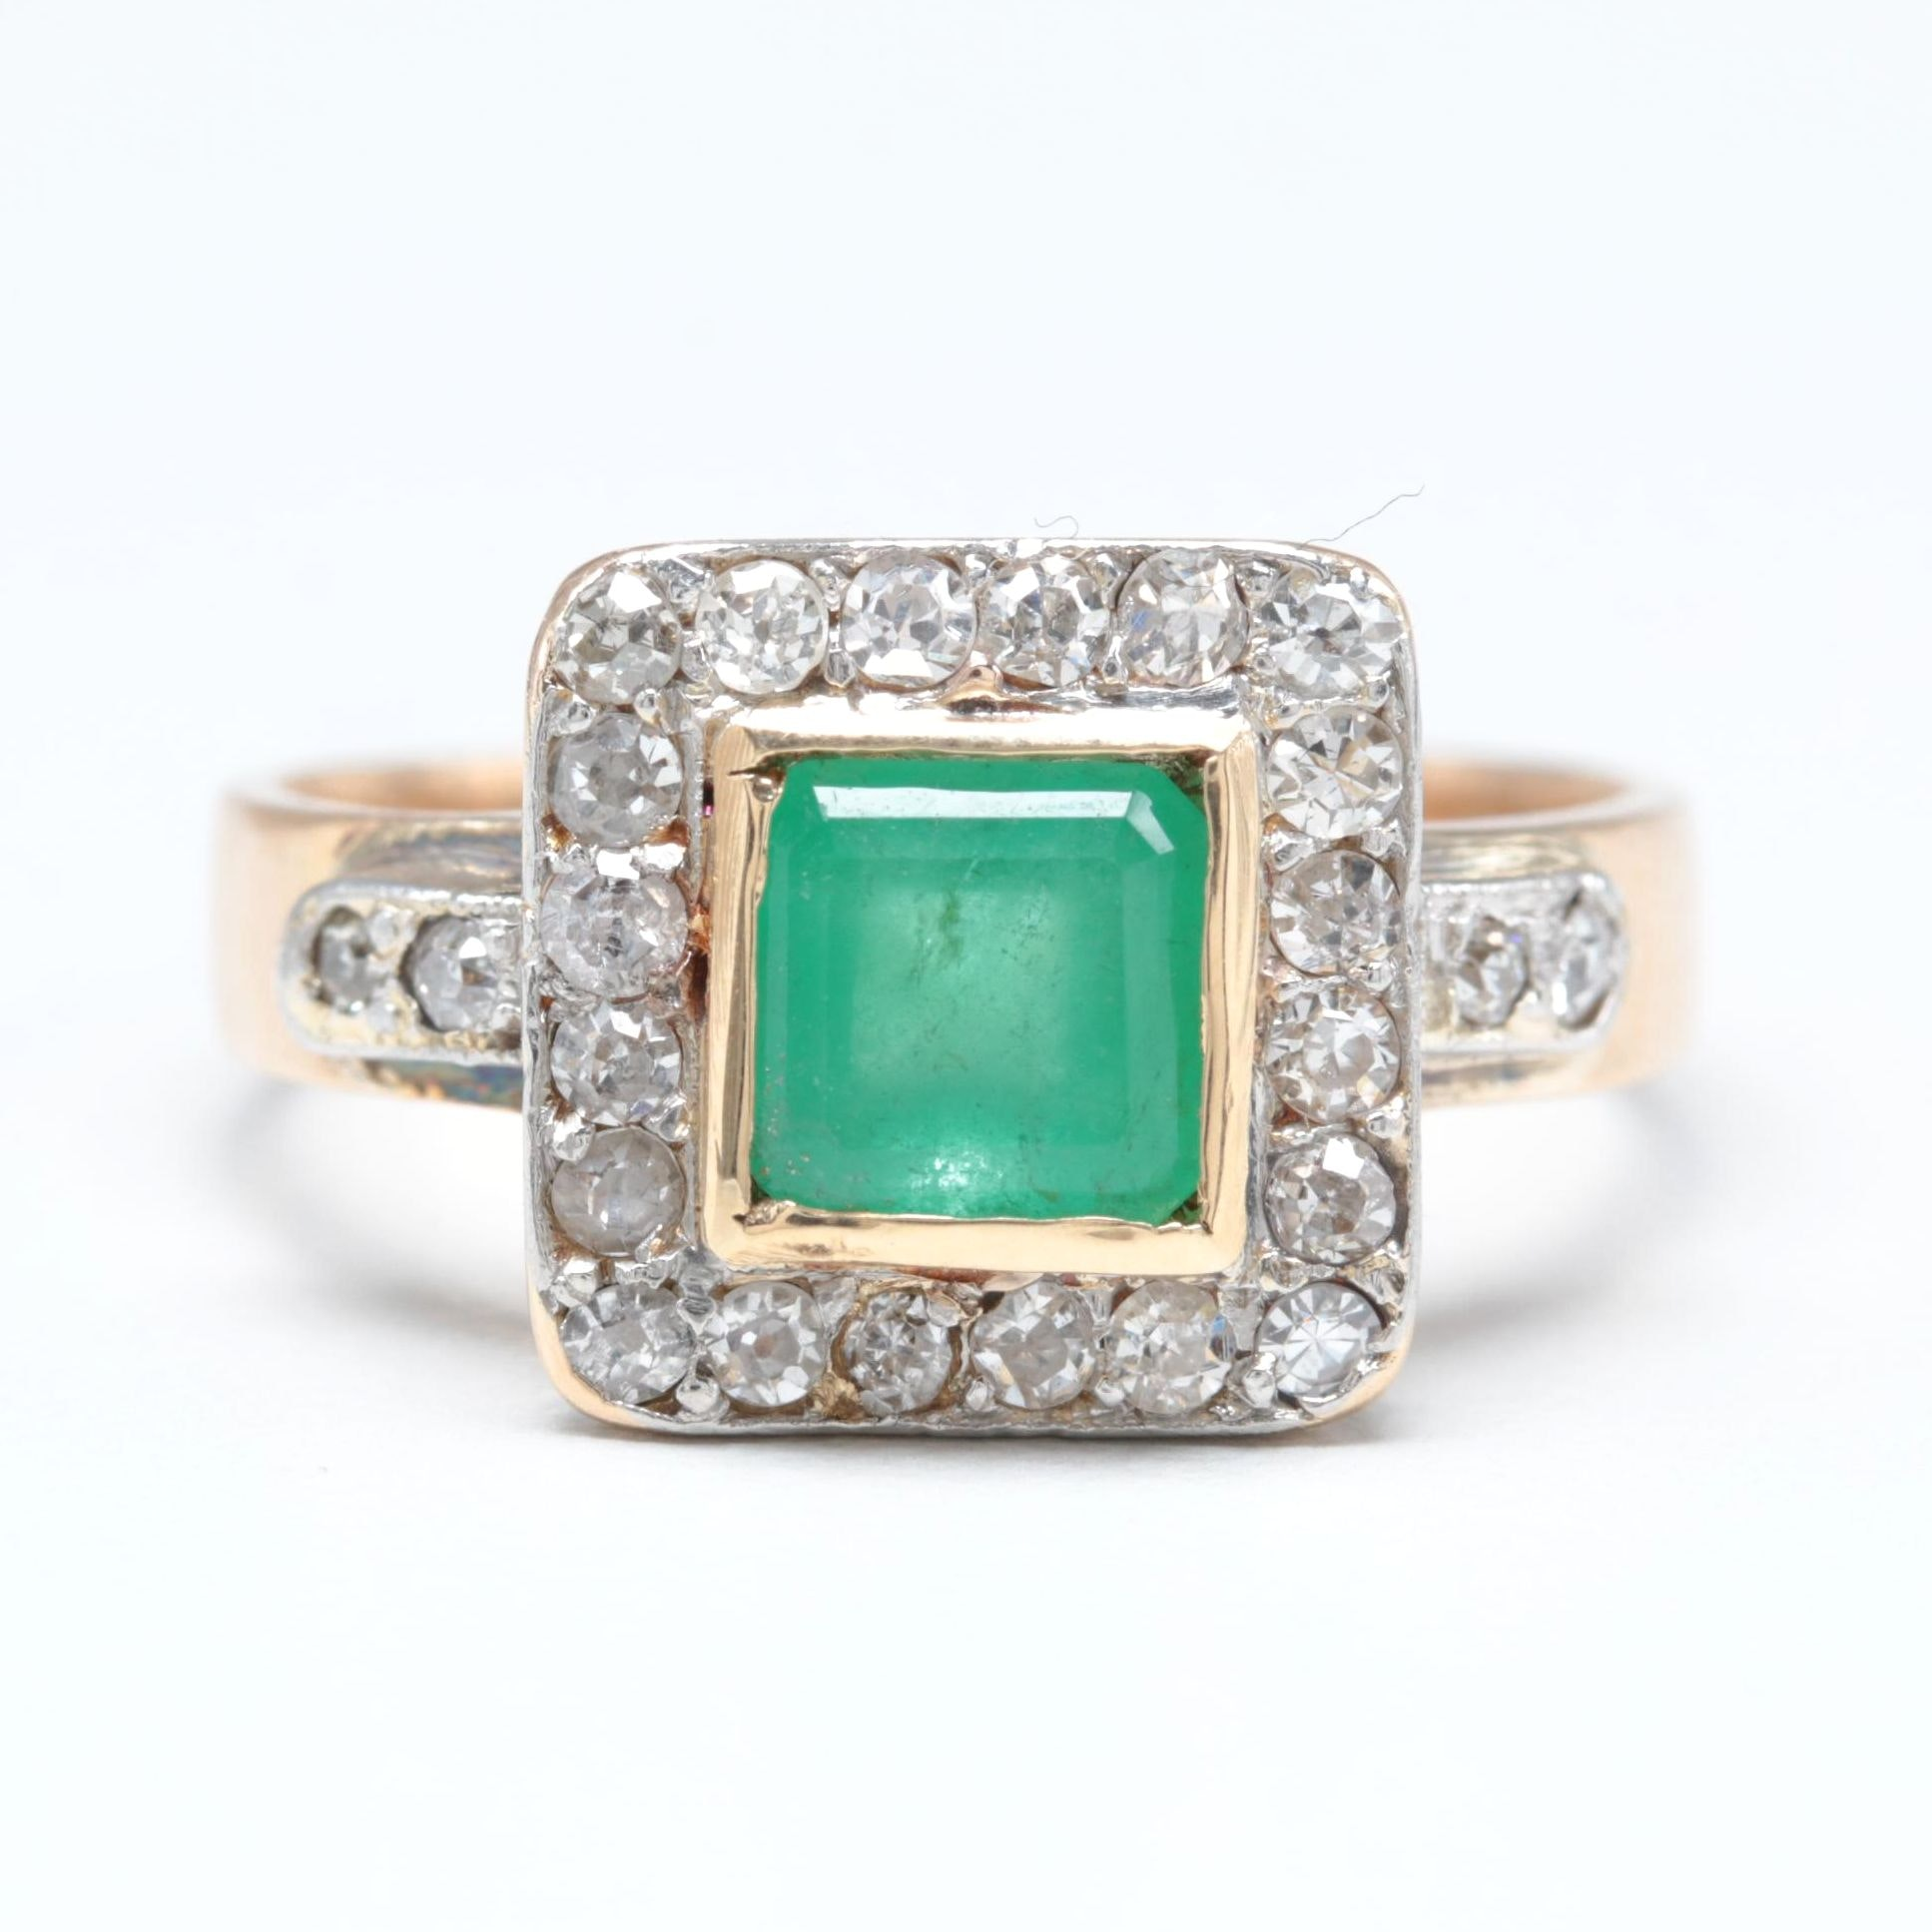 14K Yellow Gold 1.07 CT Emerald and Diamond Ring